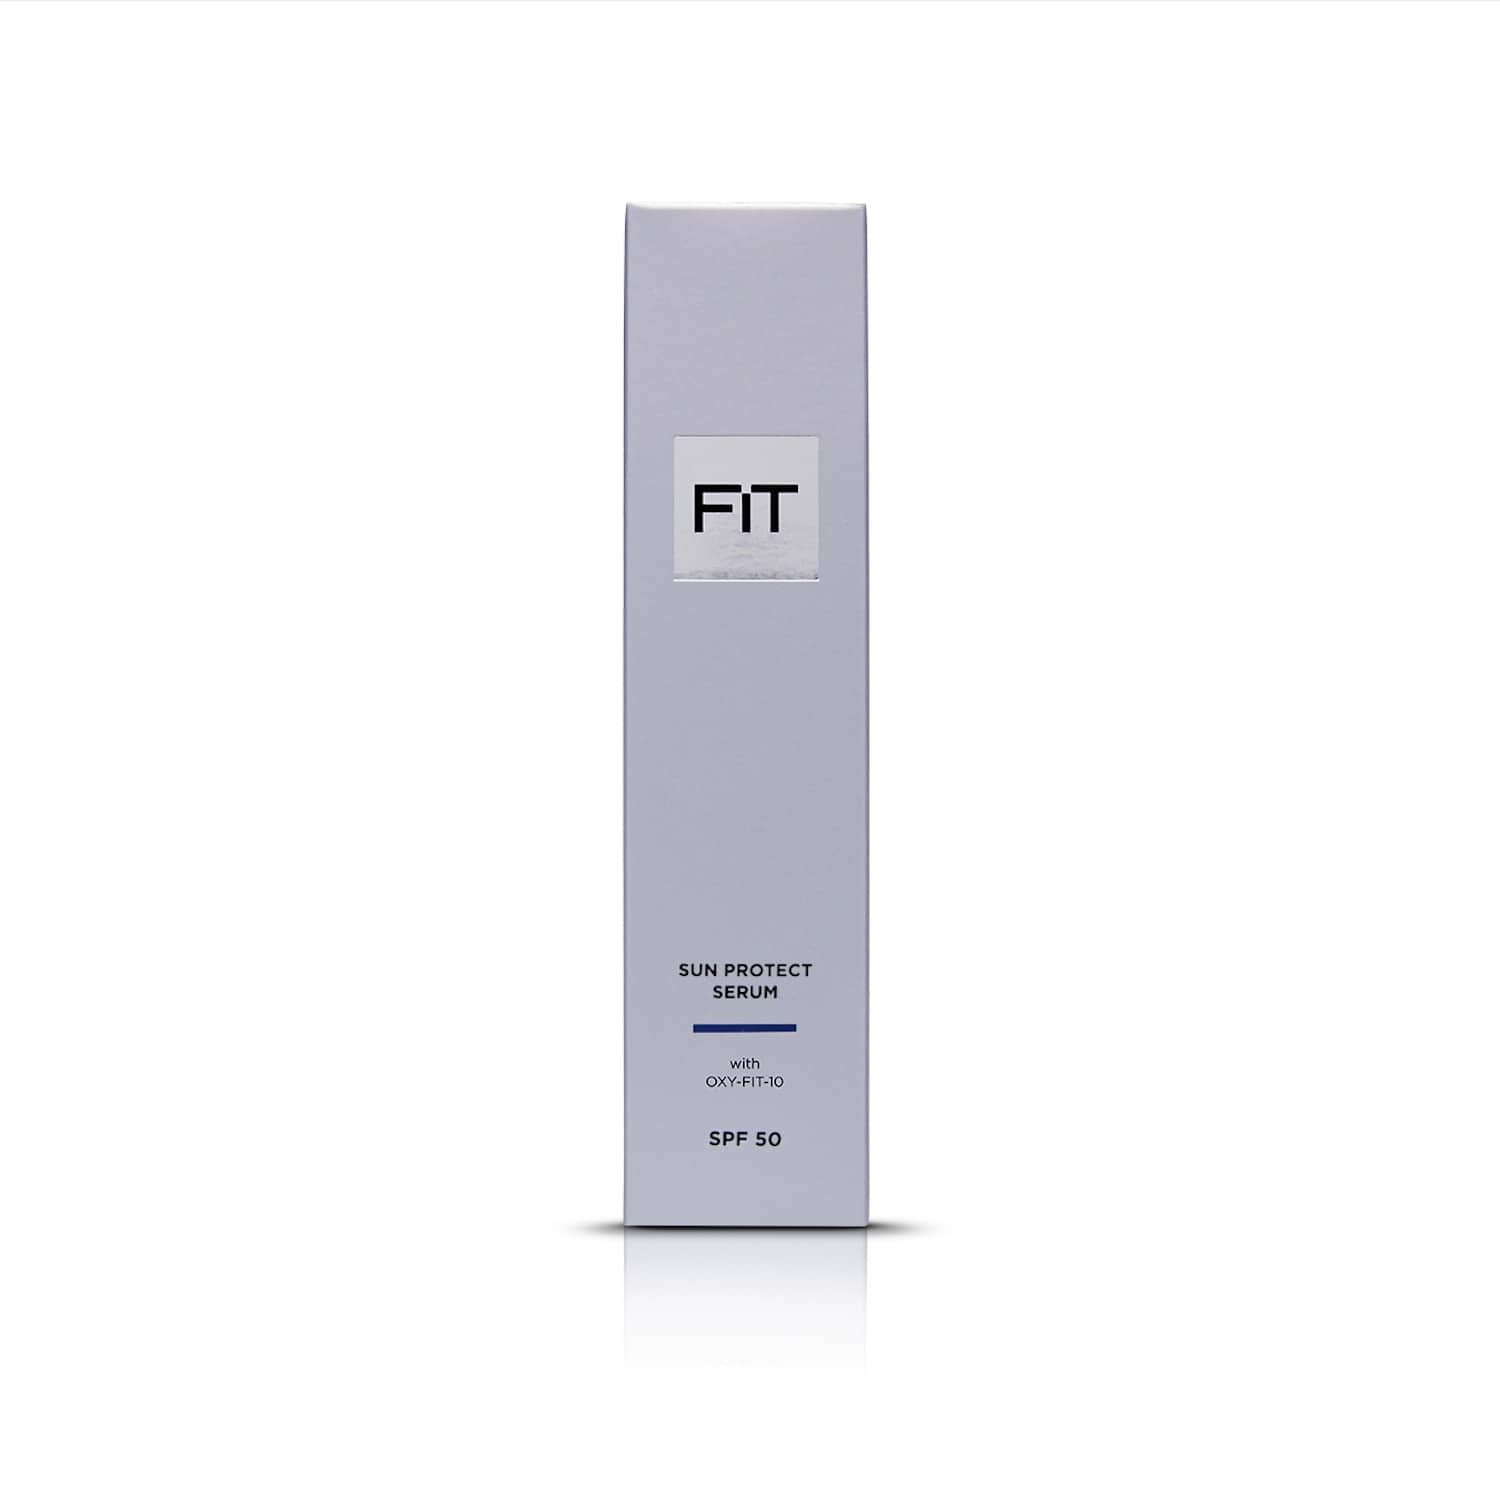 Sun Protect Serum SPF 50 by Fit Skincare